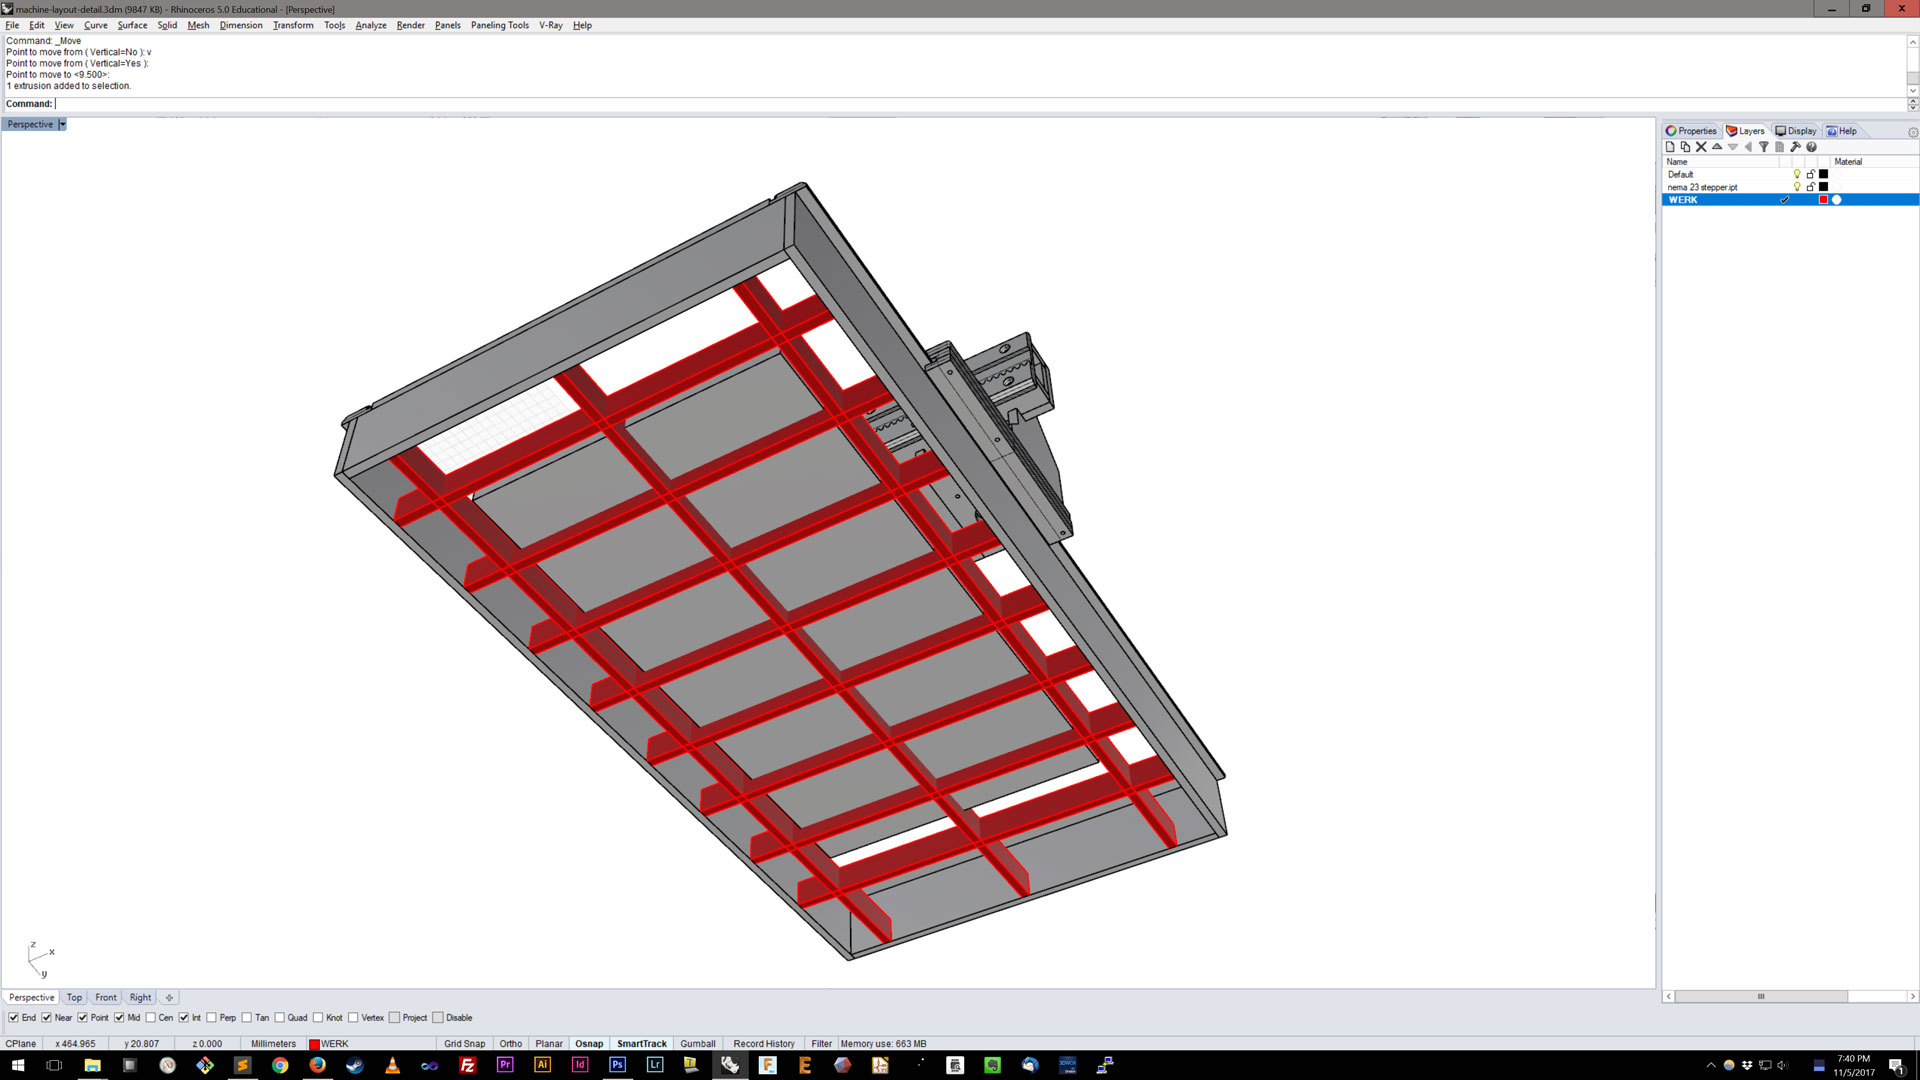 images/layout-bed.jpg